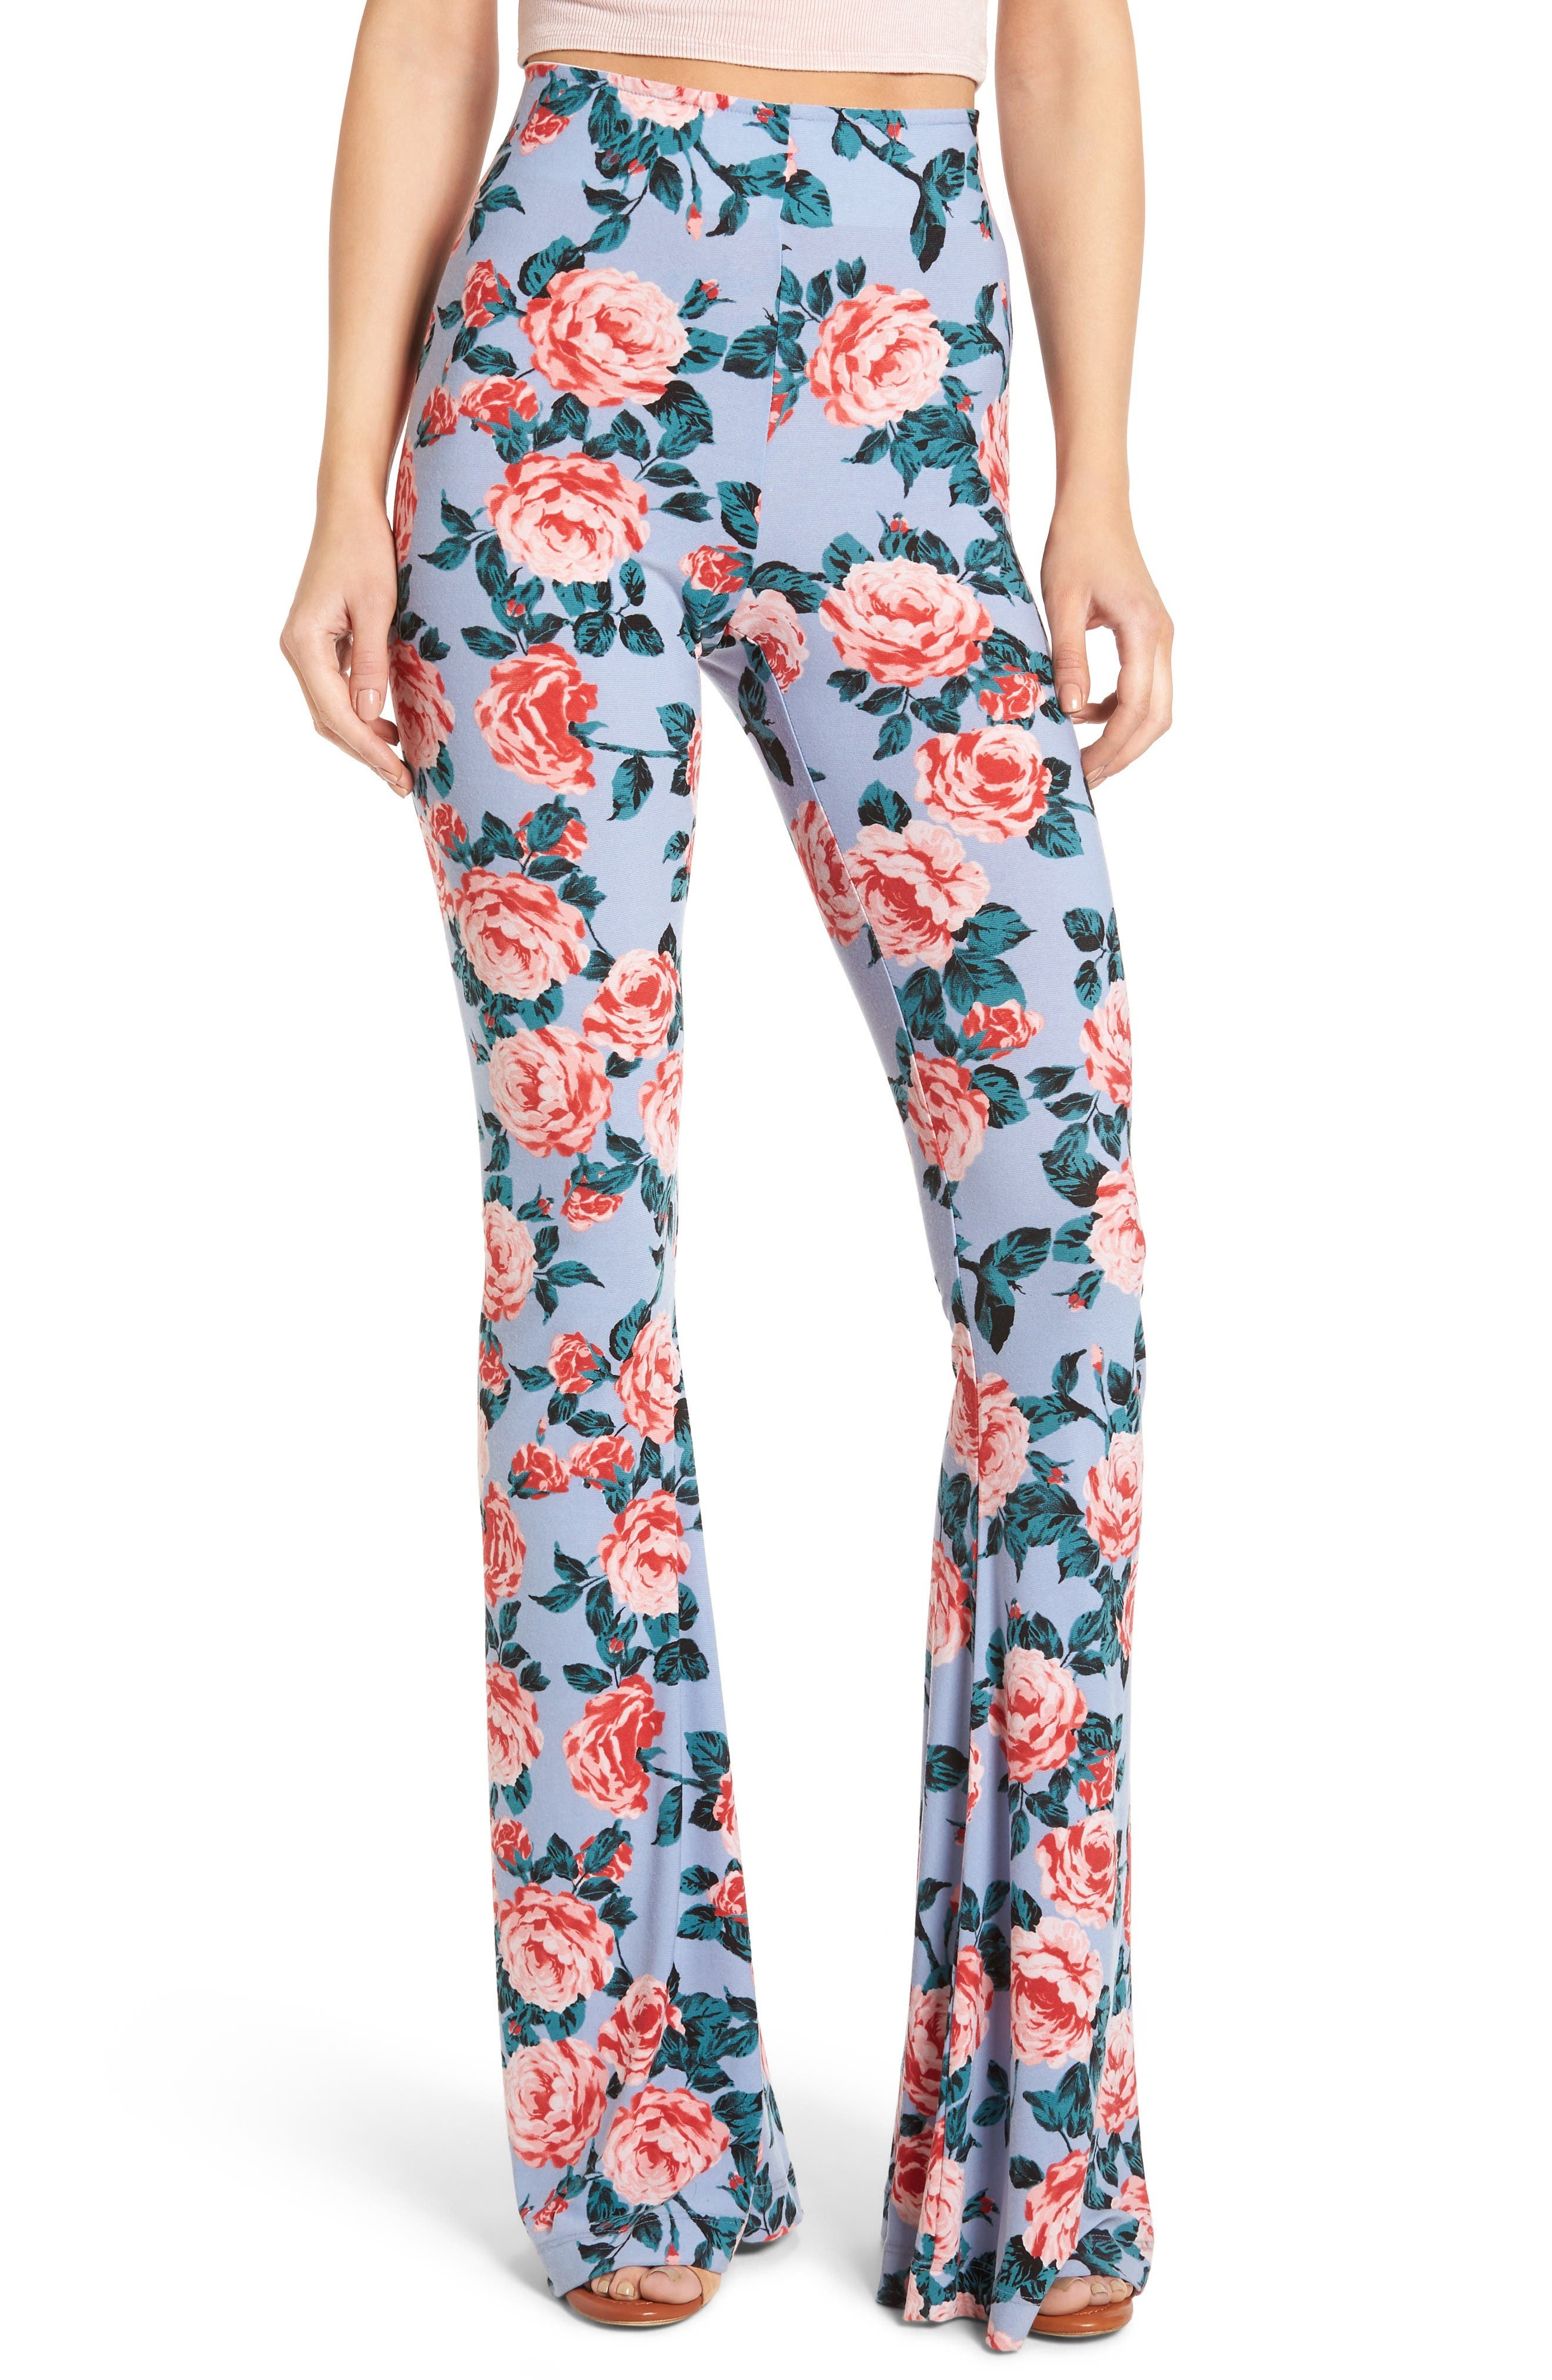 Alternate Image 1 Selected - Show Me Your Mumu Bam Bam Flare Pants